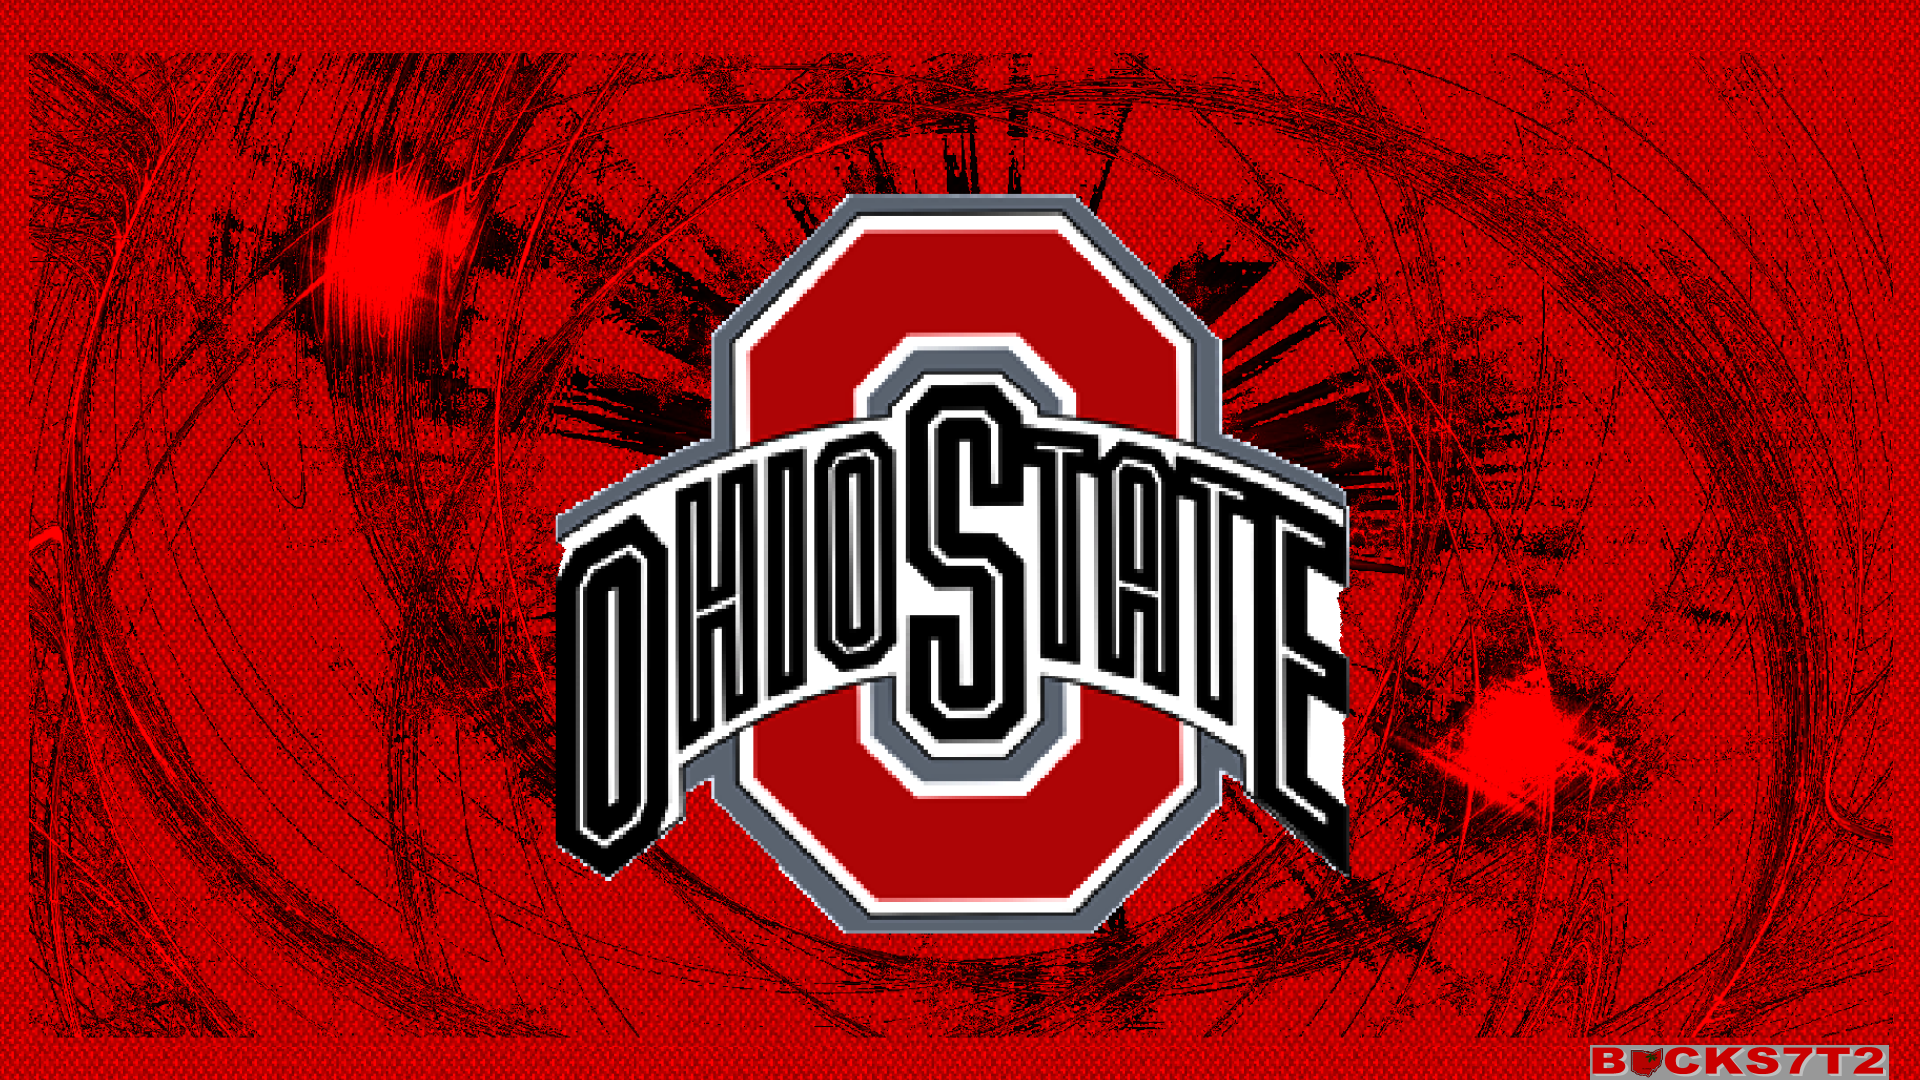 Ohio State University Basketball Wallpaper Red Block O Ohio State Ohio State Wallpaper Ohio State Buckeyes Football Ohio State Buckeyes